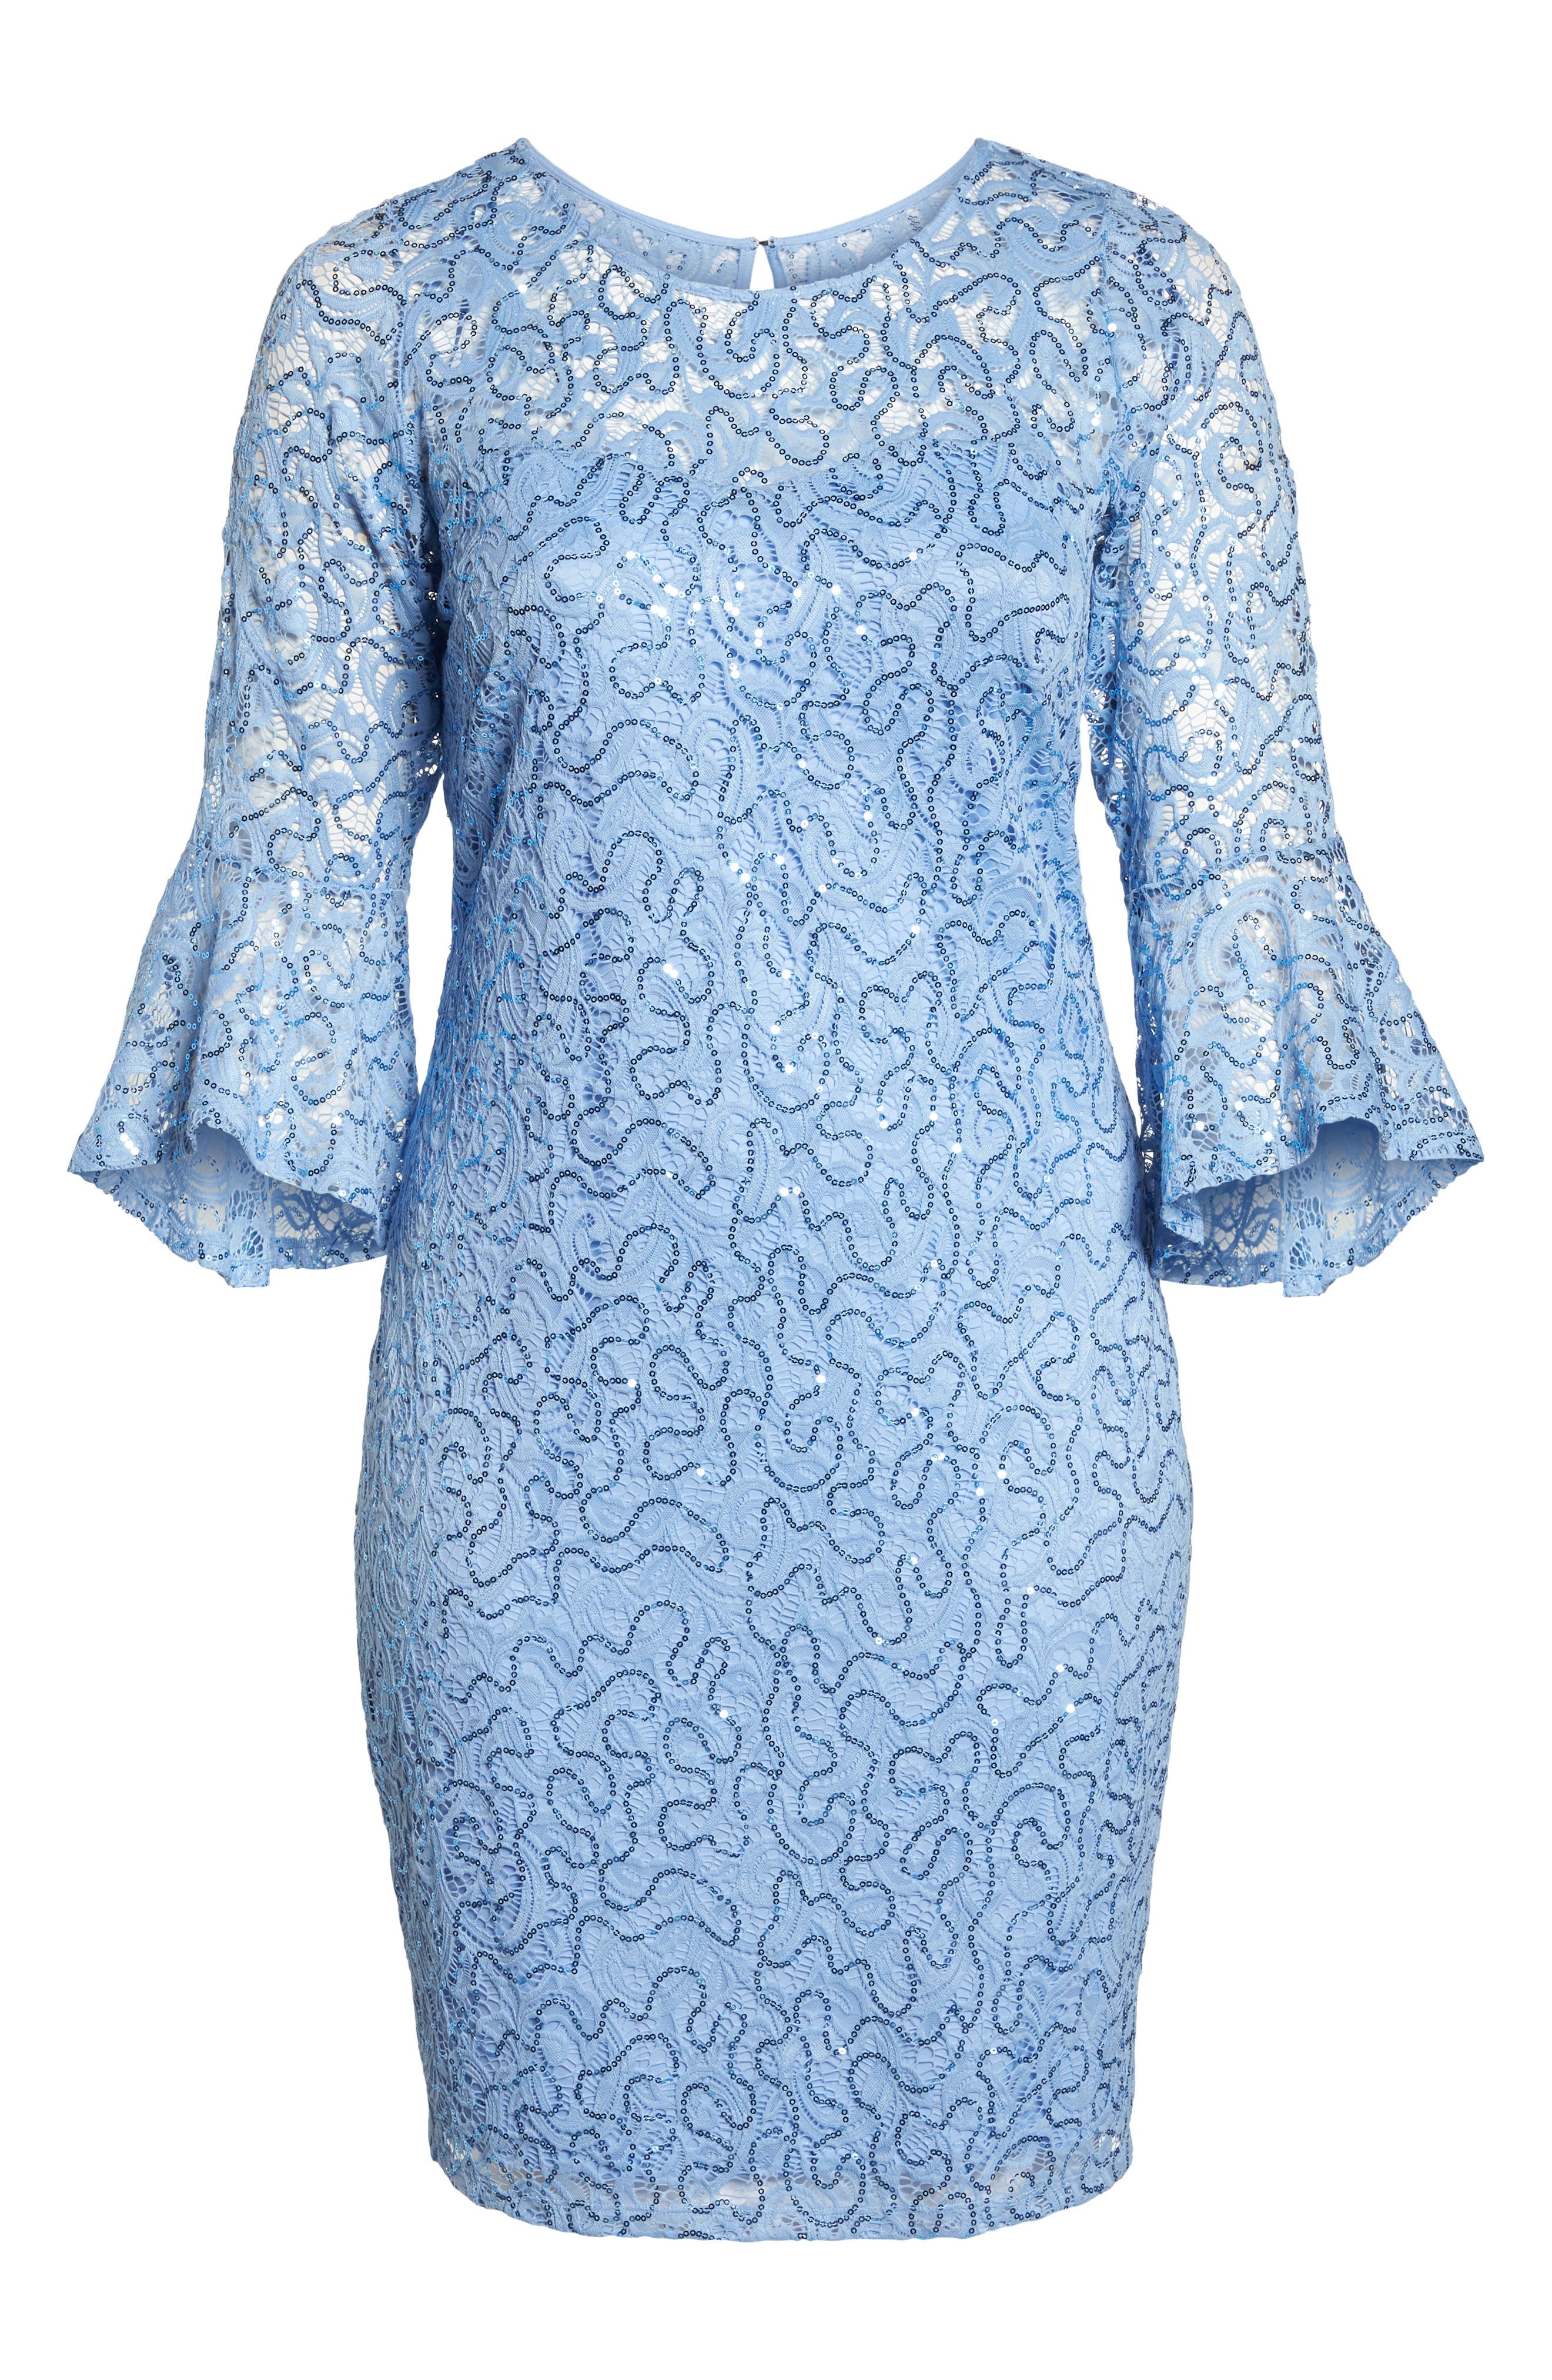 Sequin Lace Bell Sleeve Dress,                             Alternate thumbnail 6, color,                             BLUE